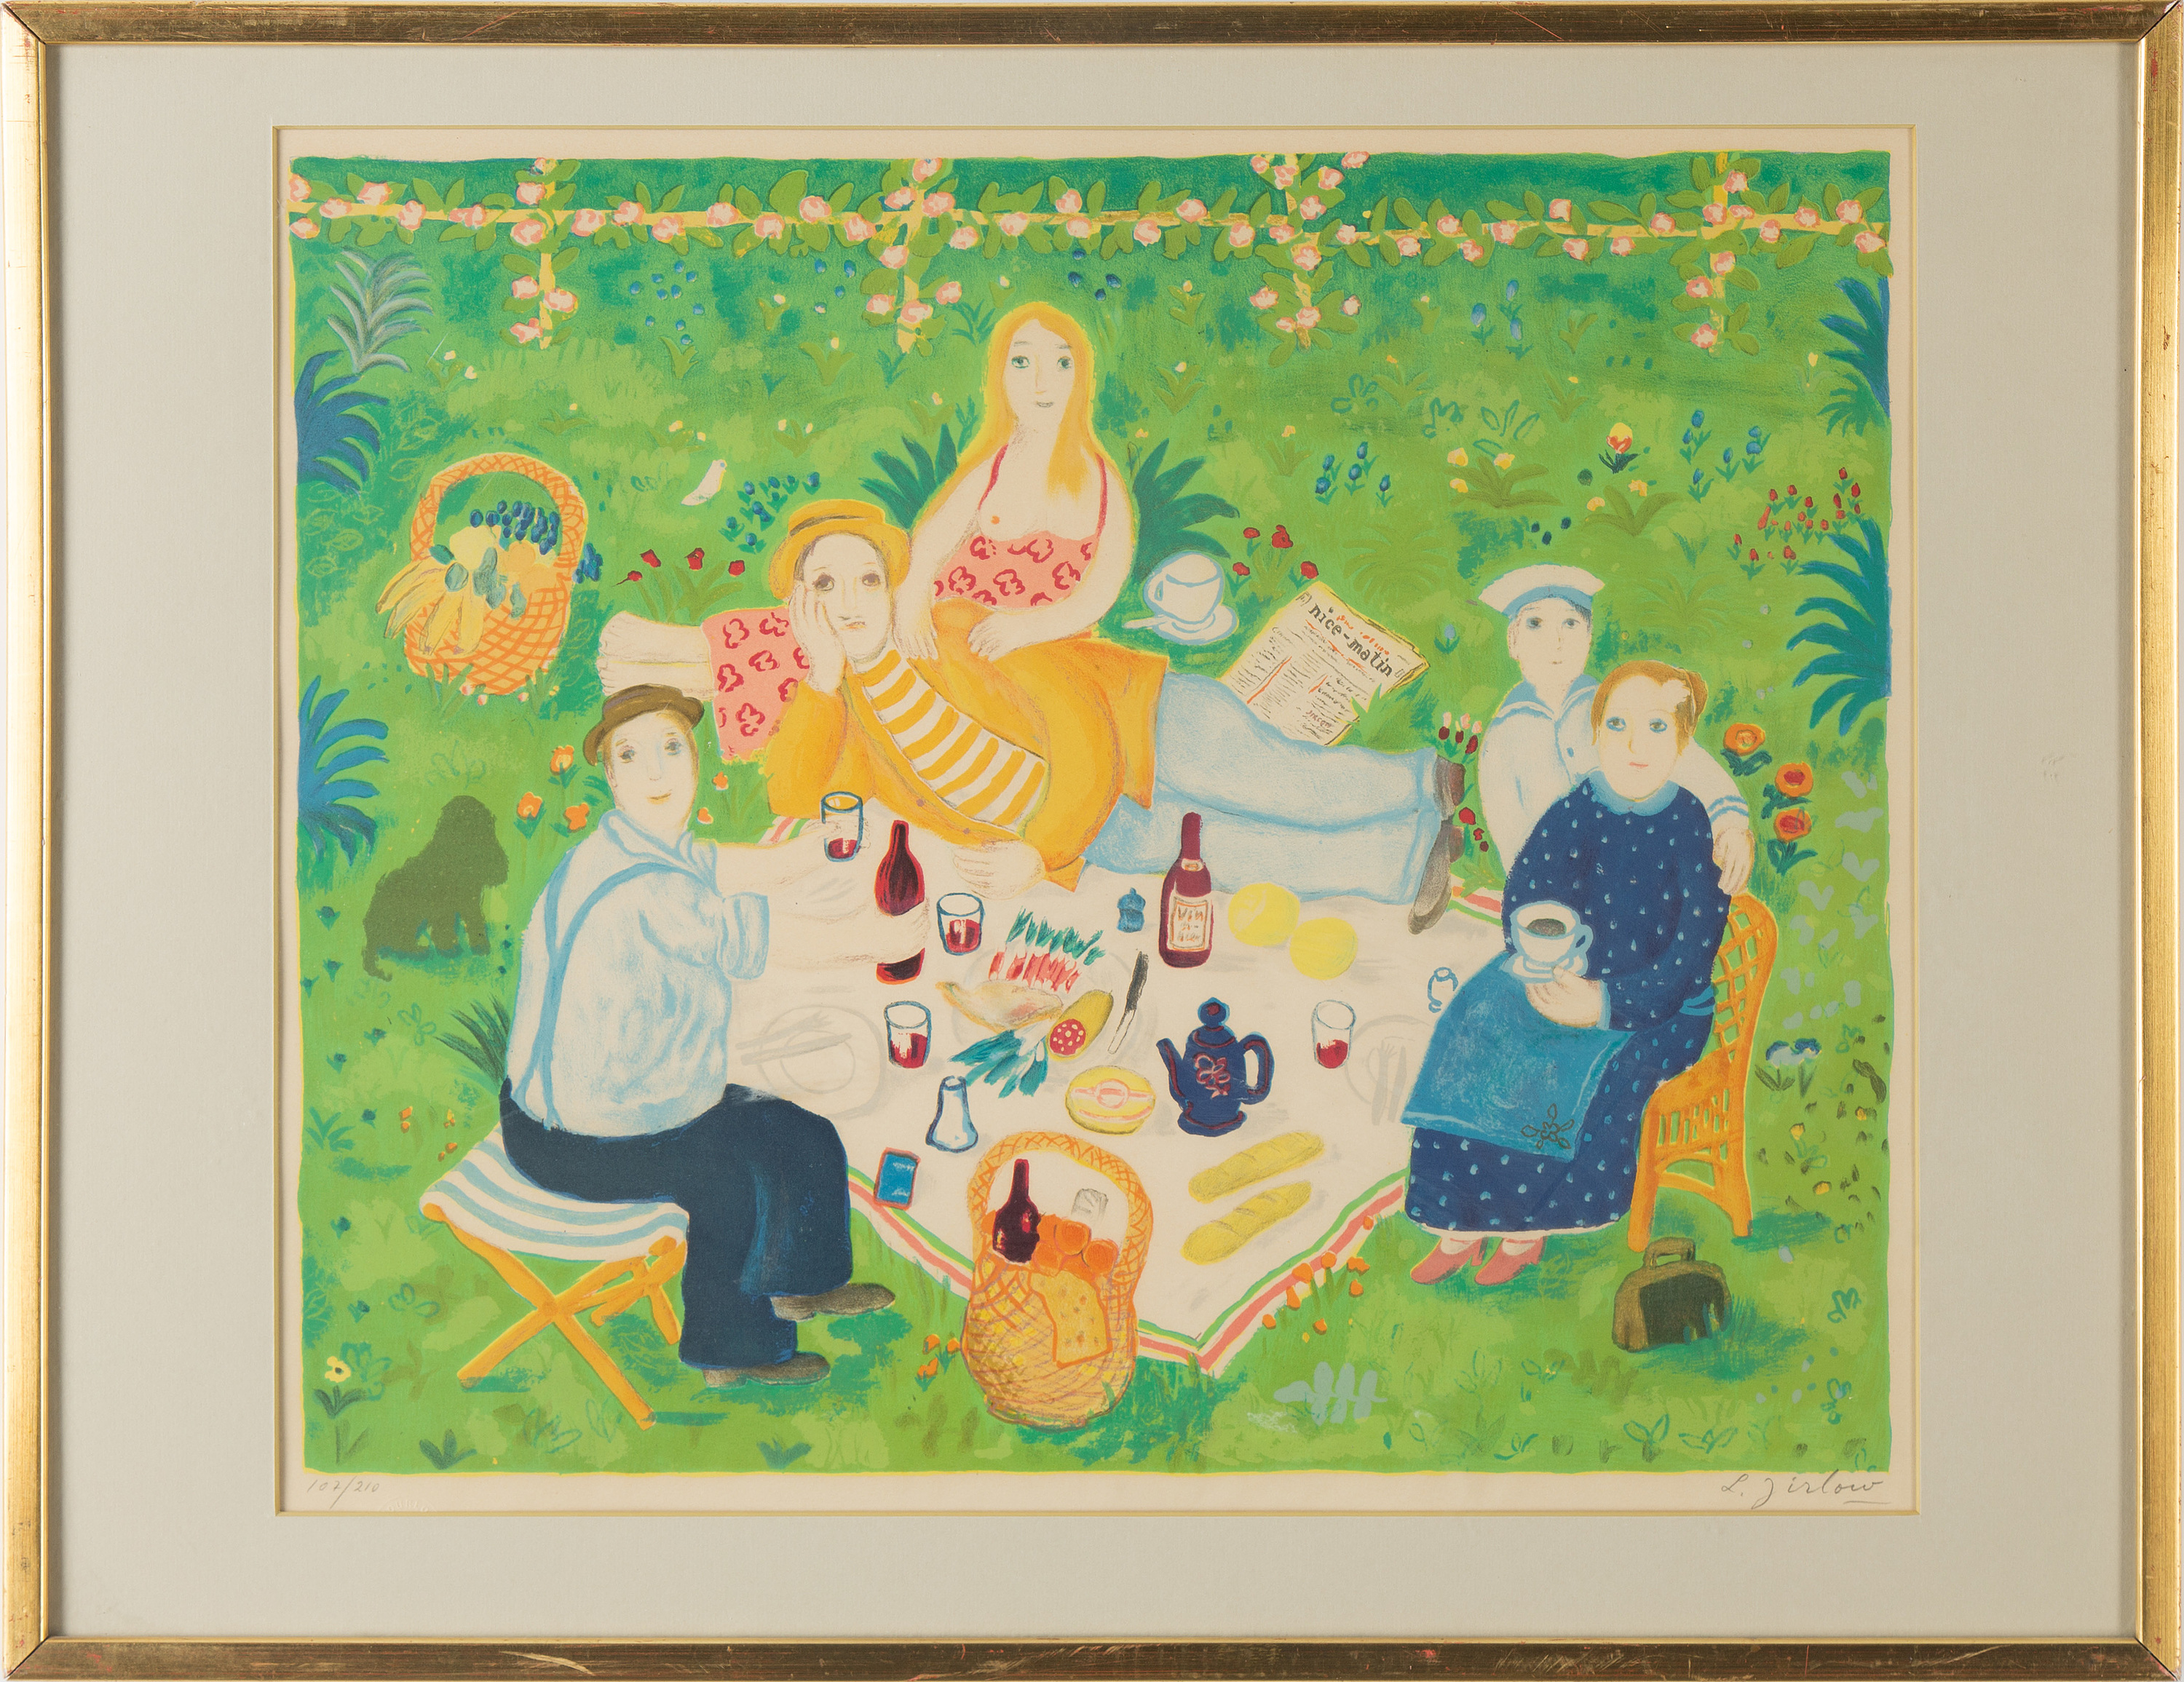 LENNART JIRLOW, LENNART JIRLOW, lithograph in colours, signed and ...